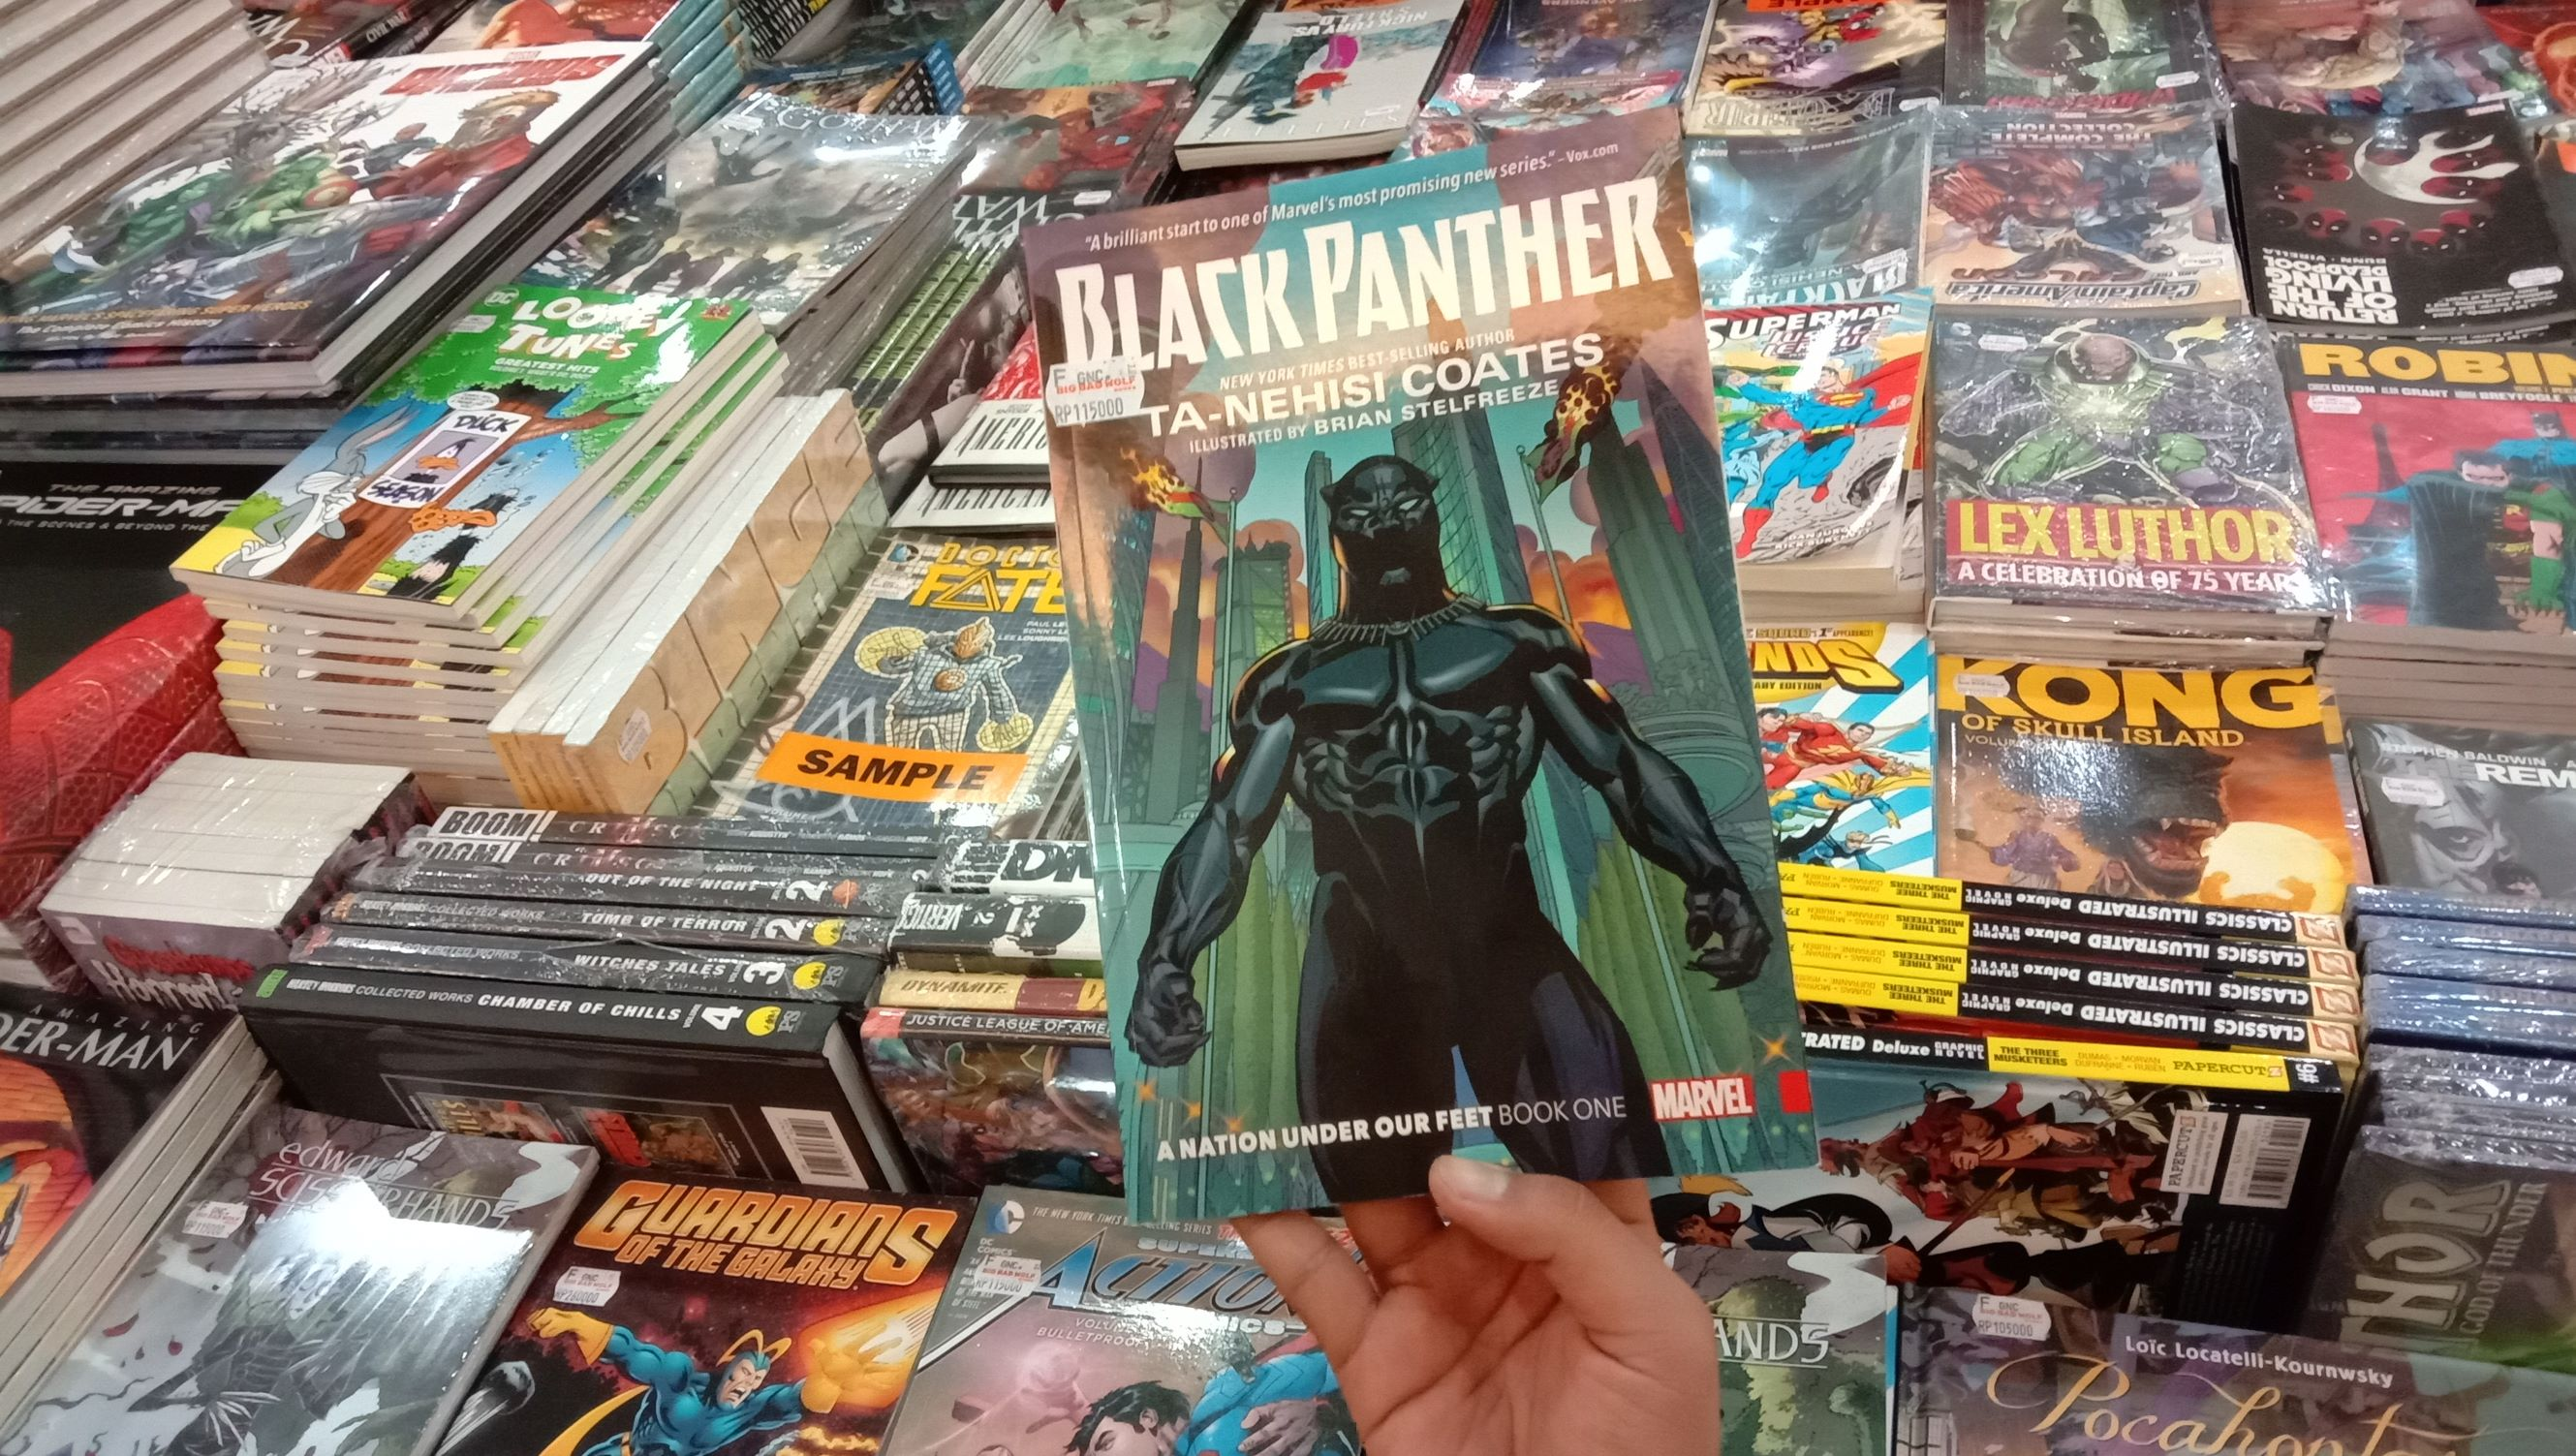 Hand holds Black Panther comic over a table of stacks of other comic books.